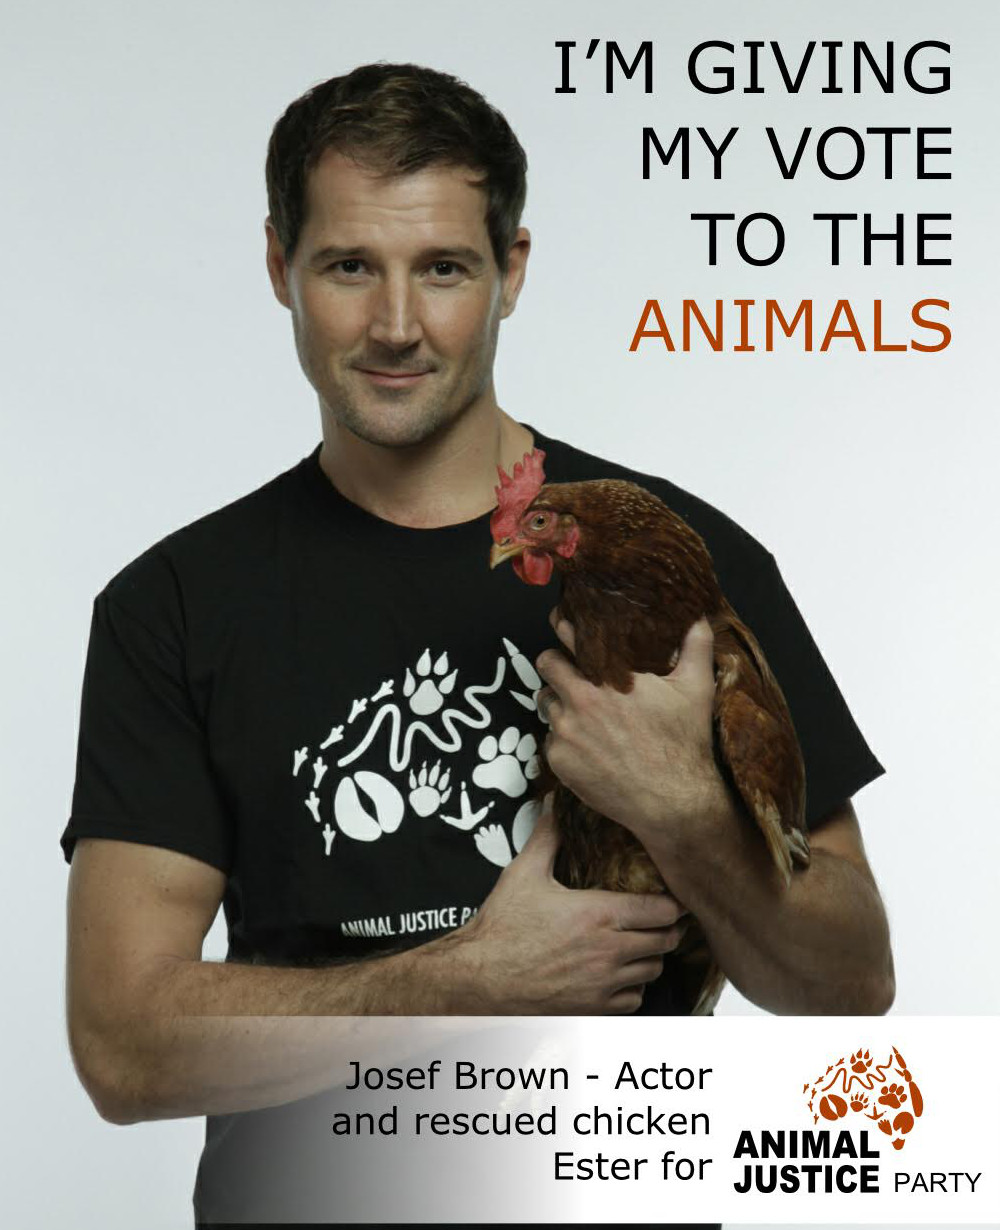 Josef_Brown_Actor_Endorsement2.jpg